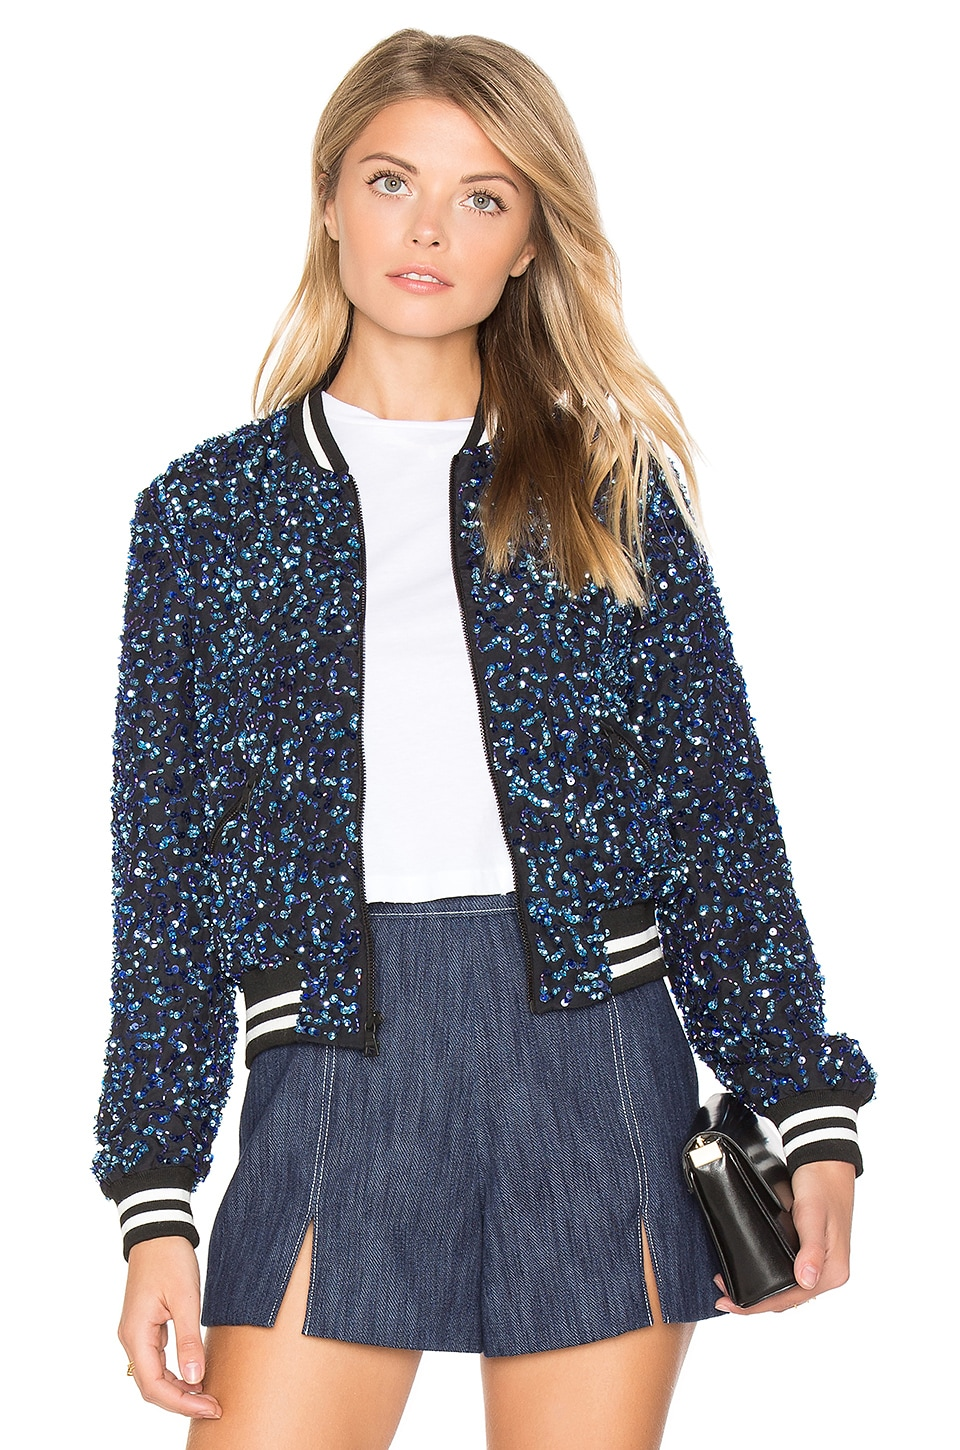 Alice + Olivia Lonnie Cropped Bomber Jacket in Cobalt